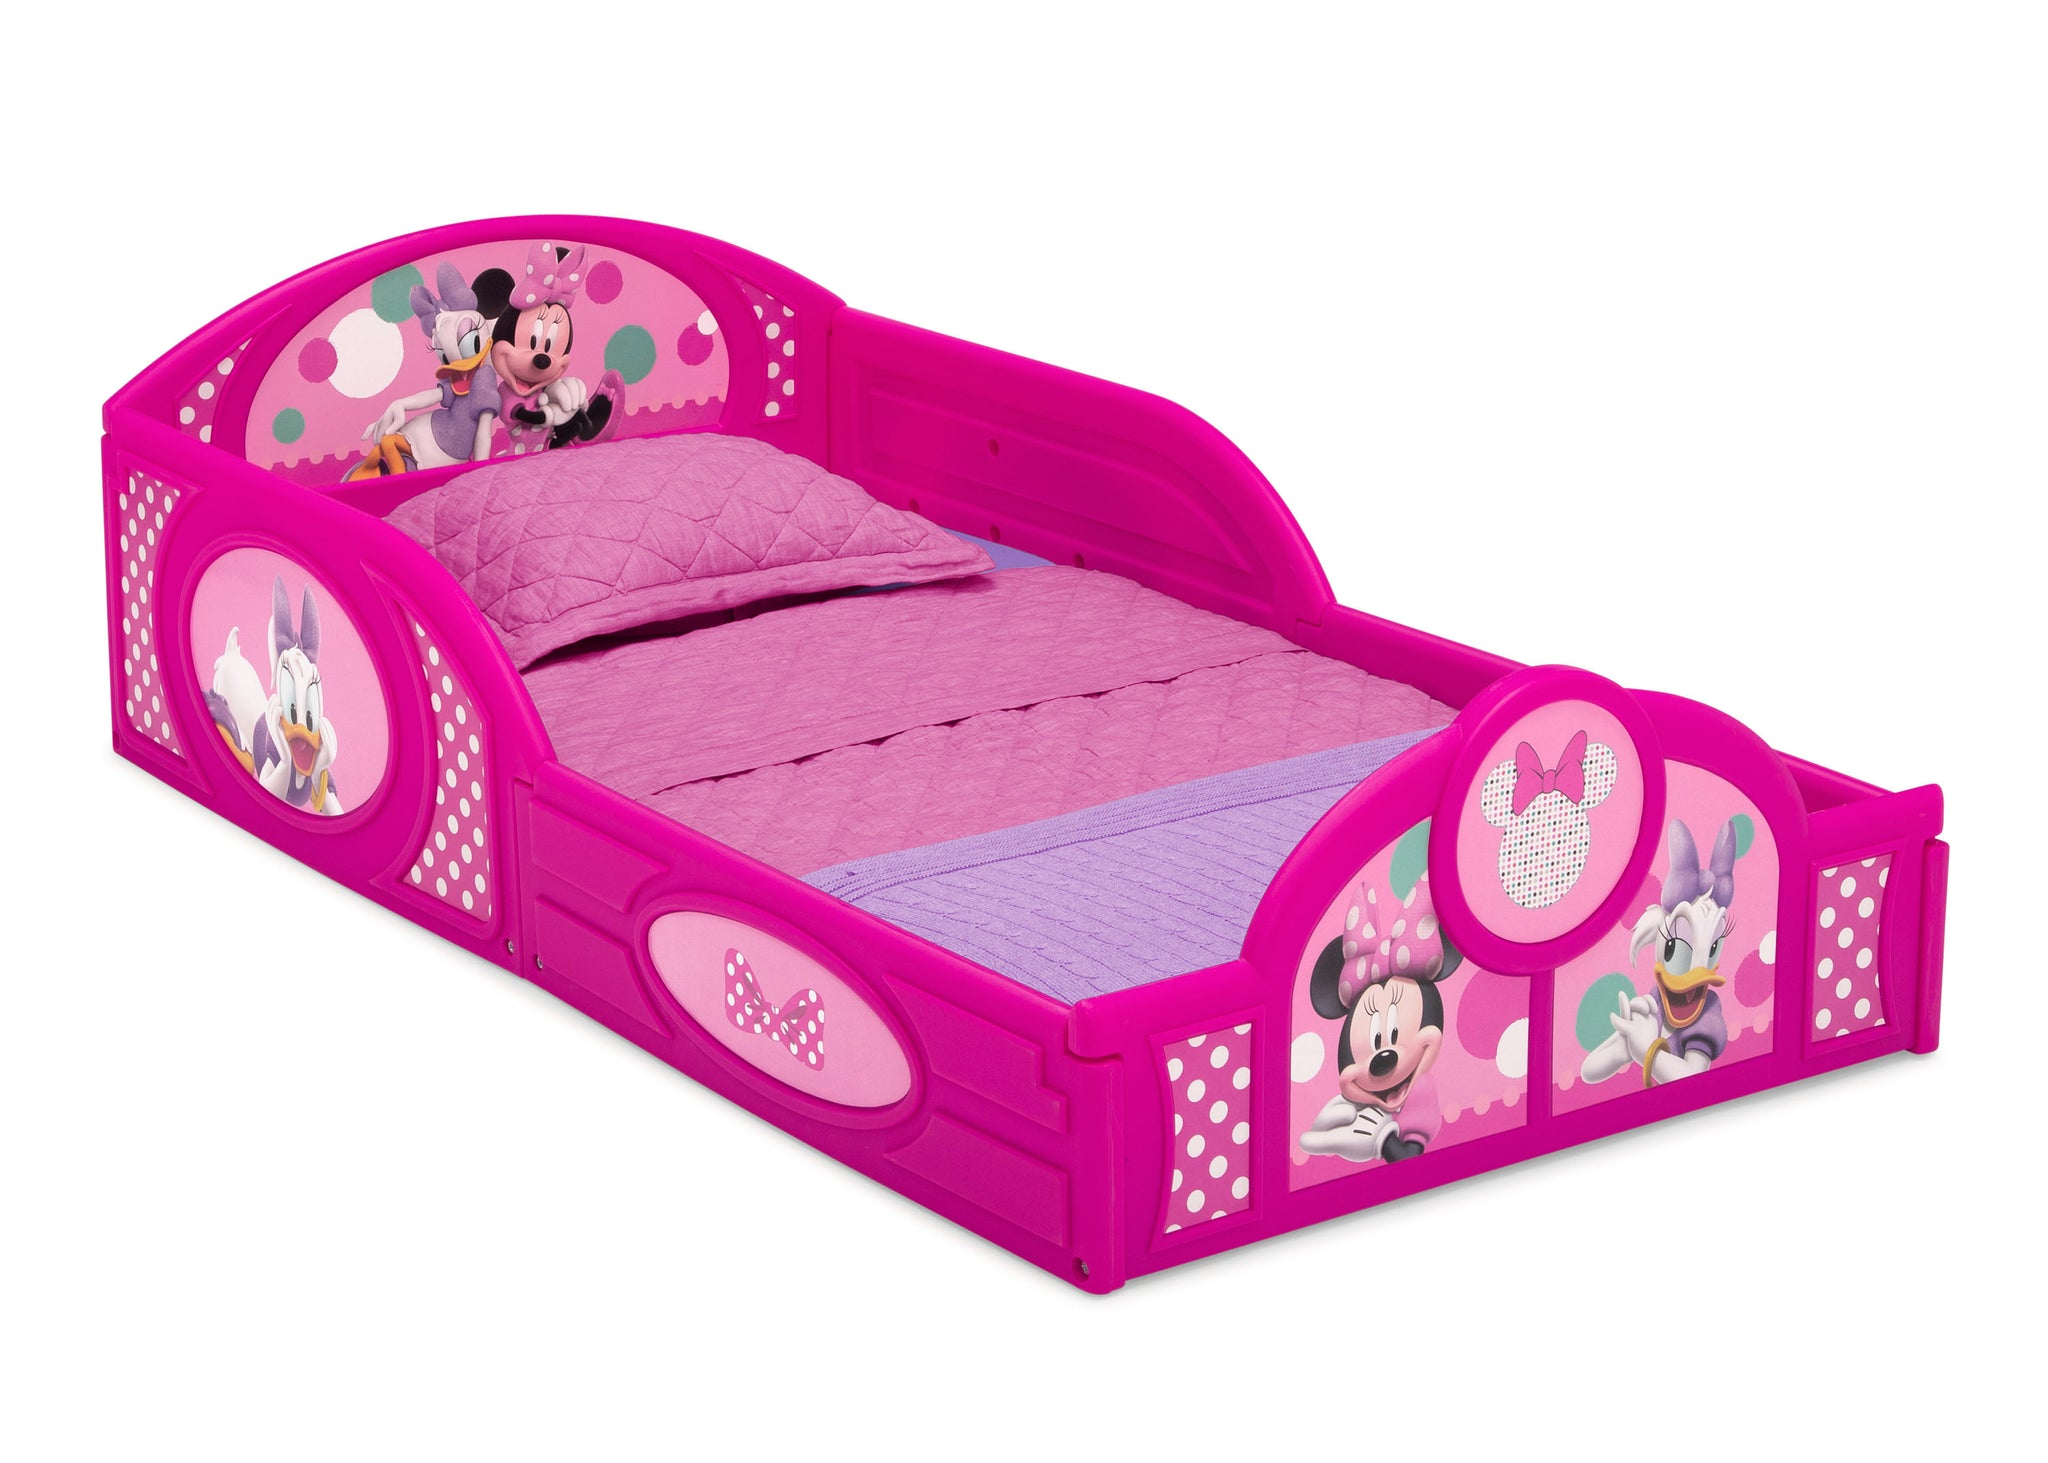 Delta Children Minnie Mouse (1063) Plastic Sleep and Play Toddler Bed, Right Silo View